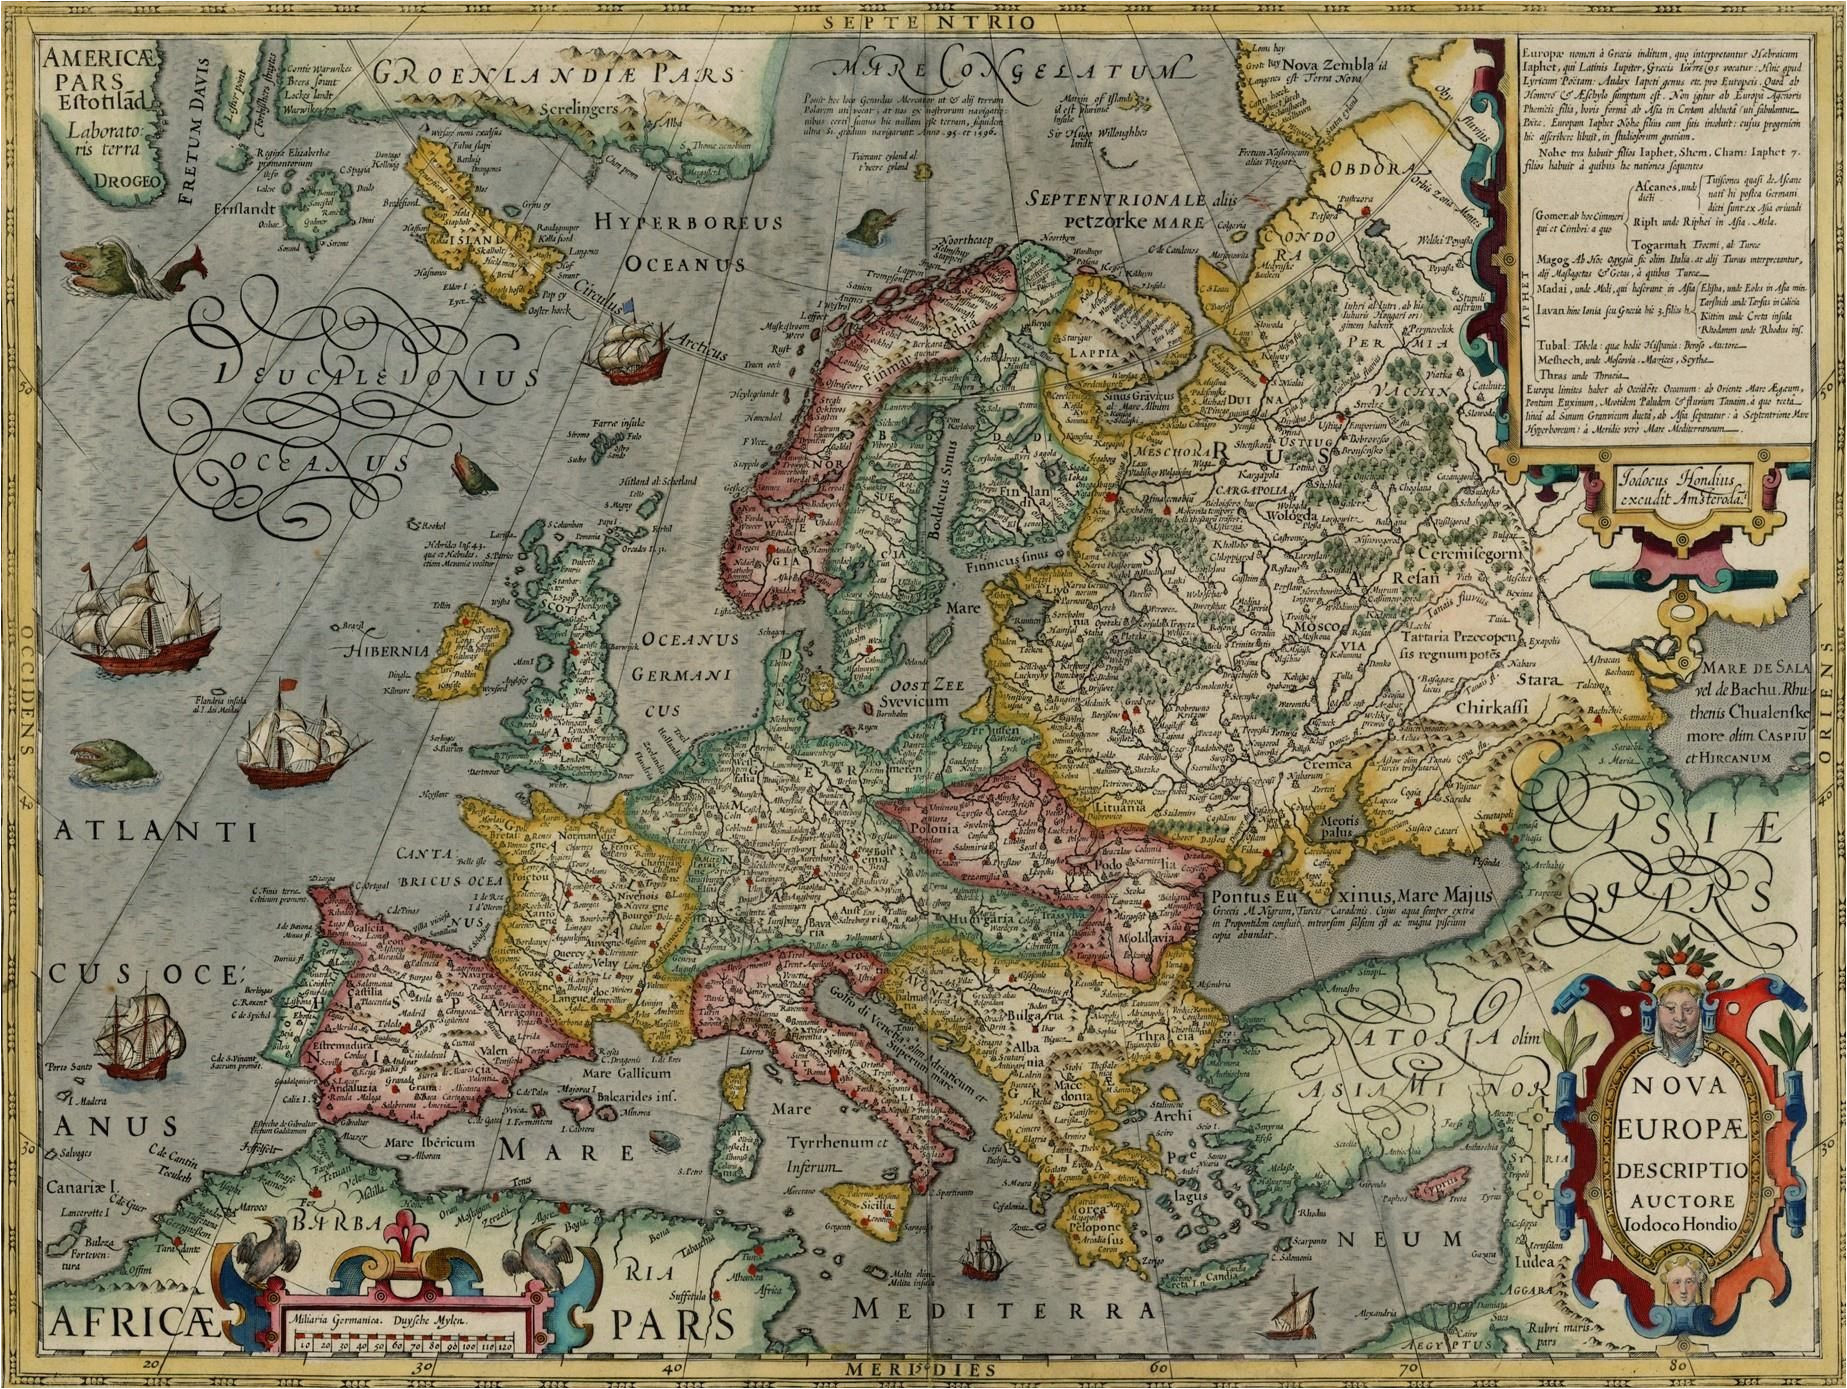 Show Me the Map Of Europe Map Of Europe by Jodocus Hondius 1630 the Map Shows A